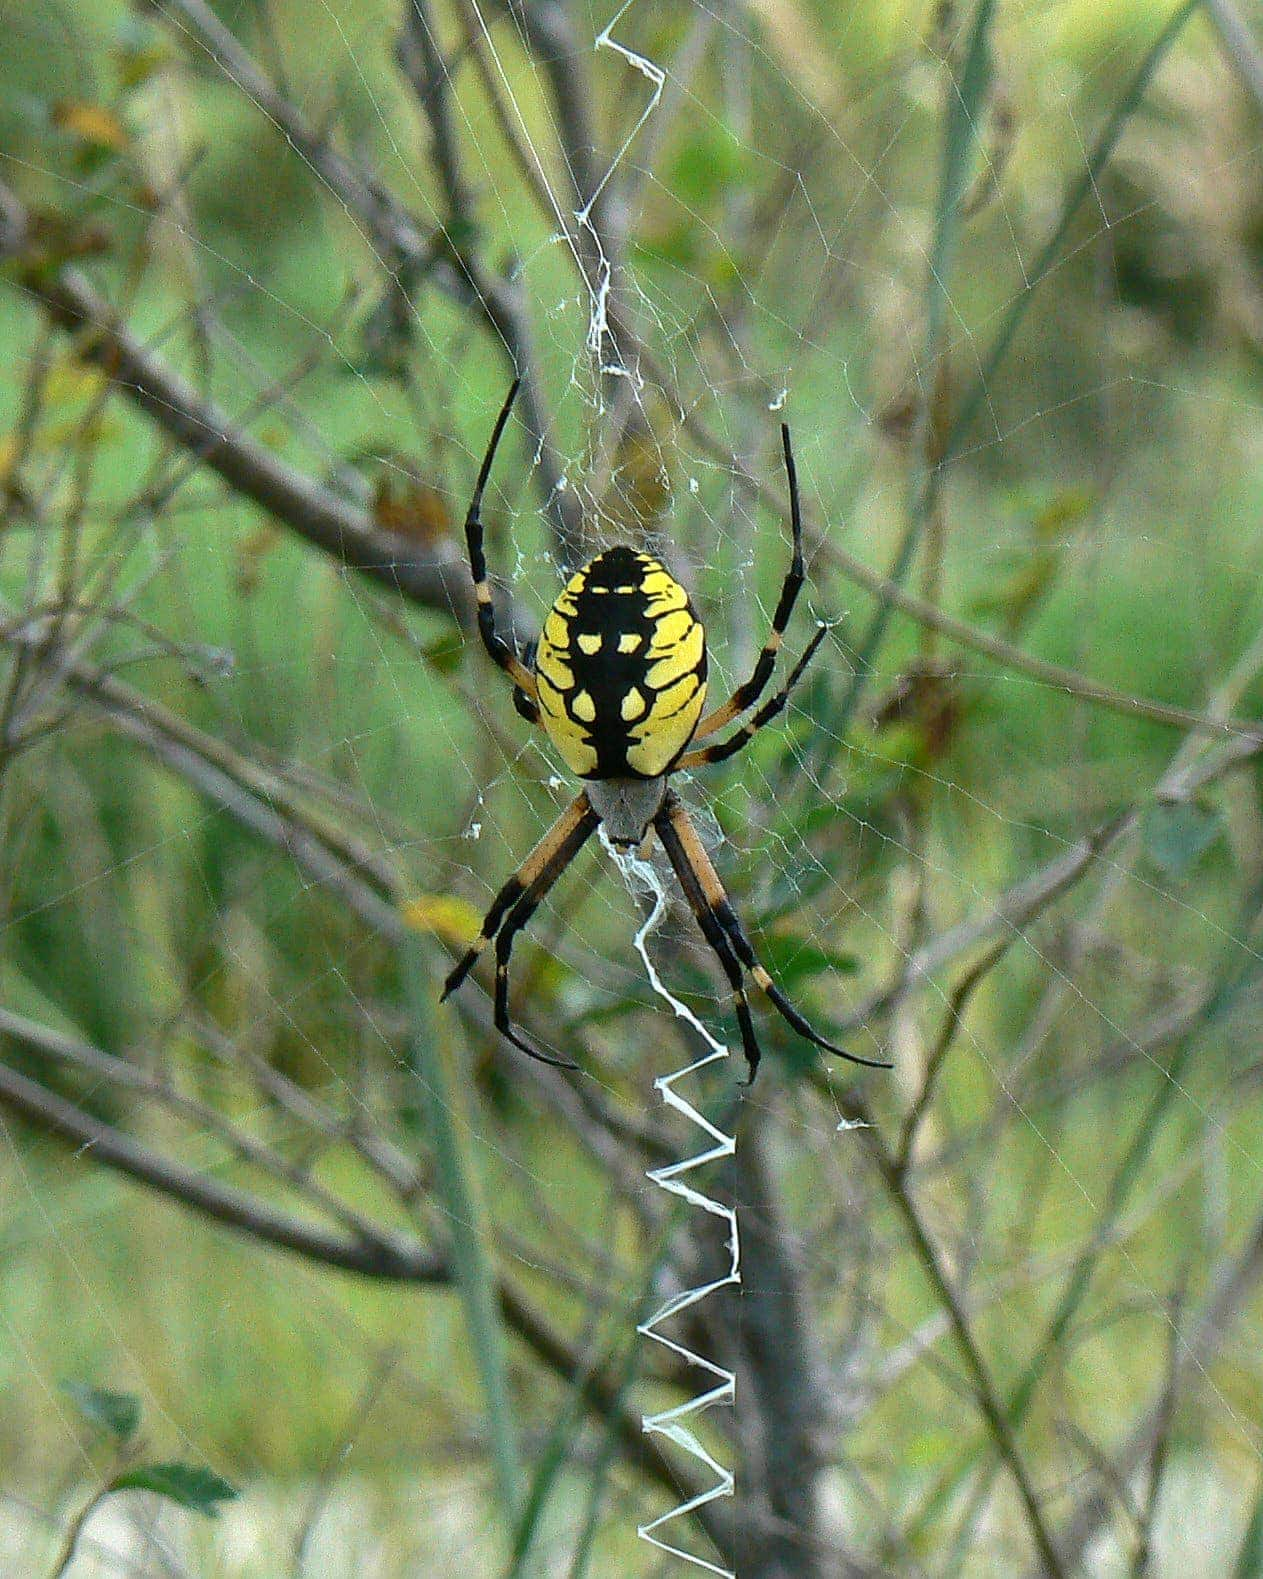 Picture of Argiope aurantia (Black and Yellow Garden Spider) - Female - Dorsal,Gravid,Webs